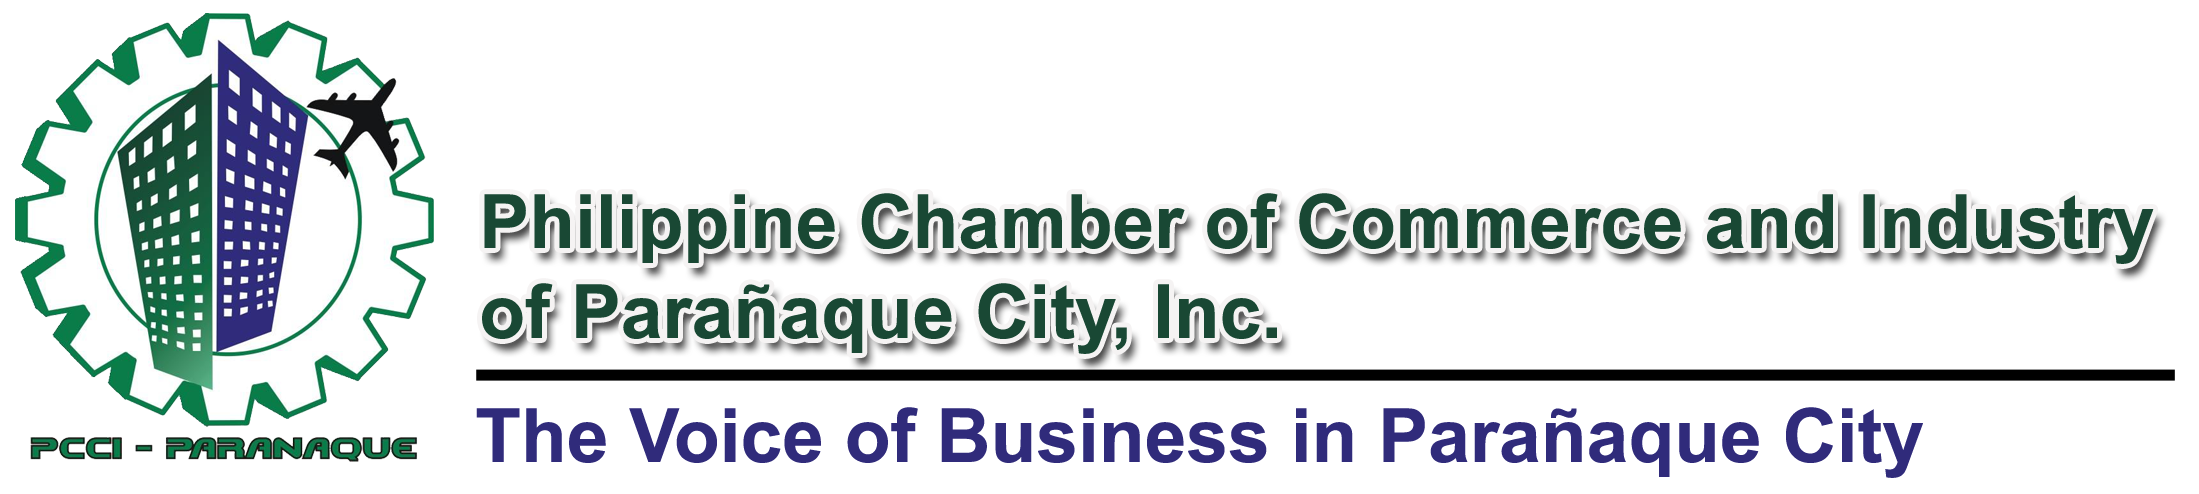 Philippine Chamber of Commerce and Industry of Parañaque City, Inc.